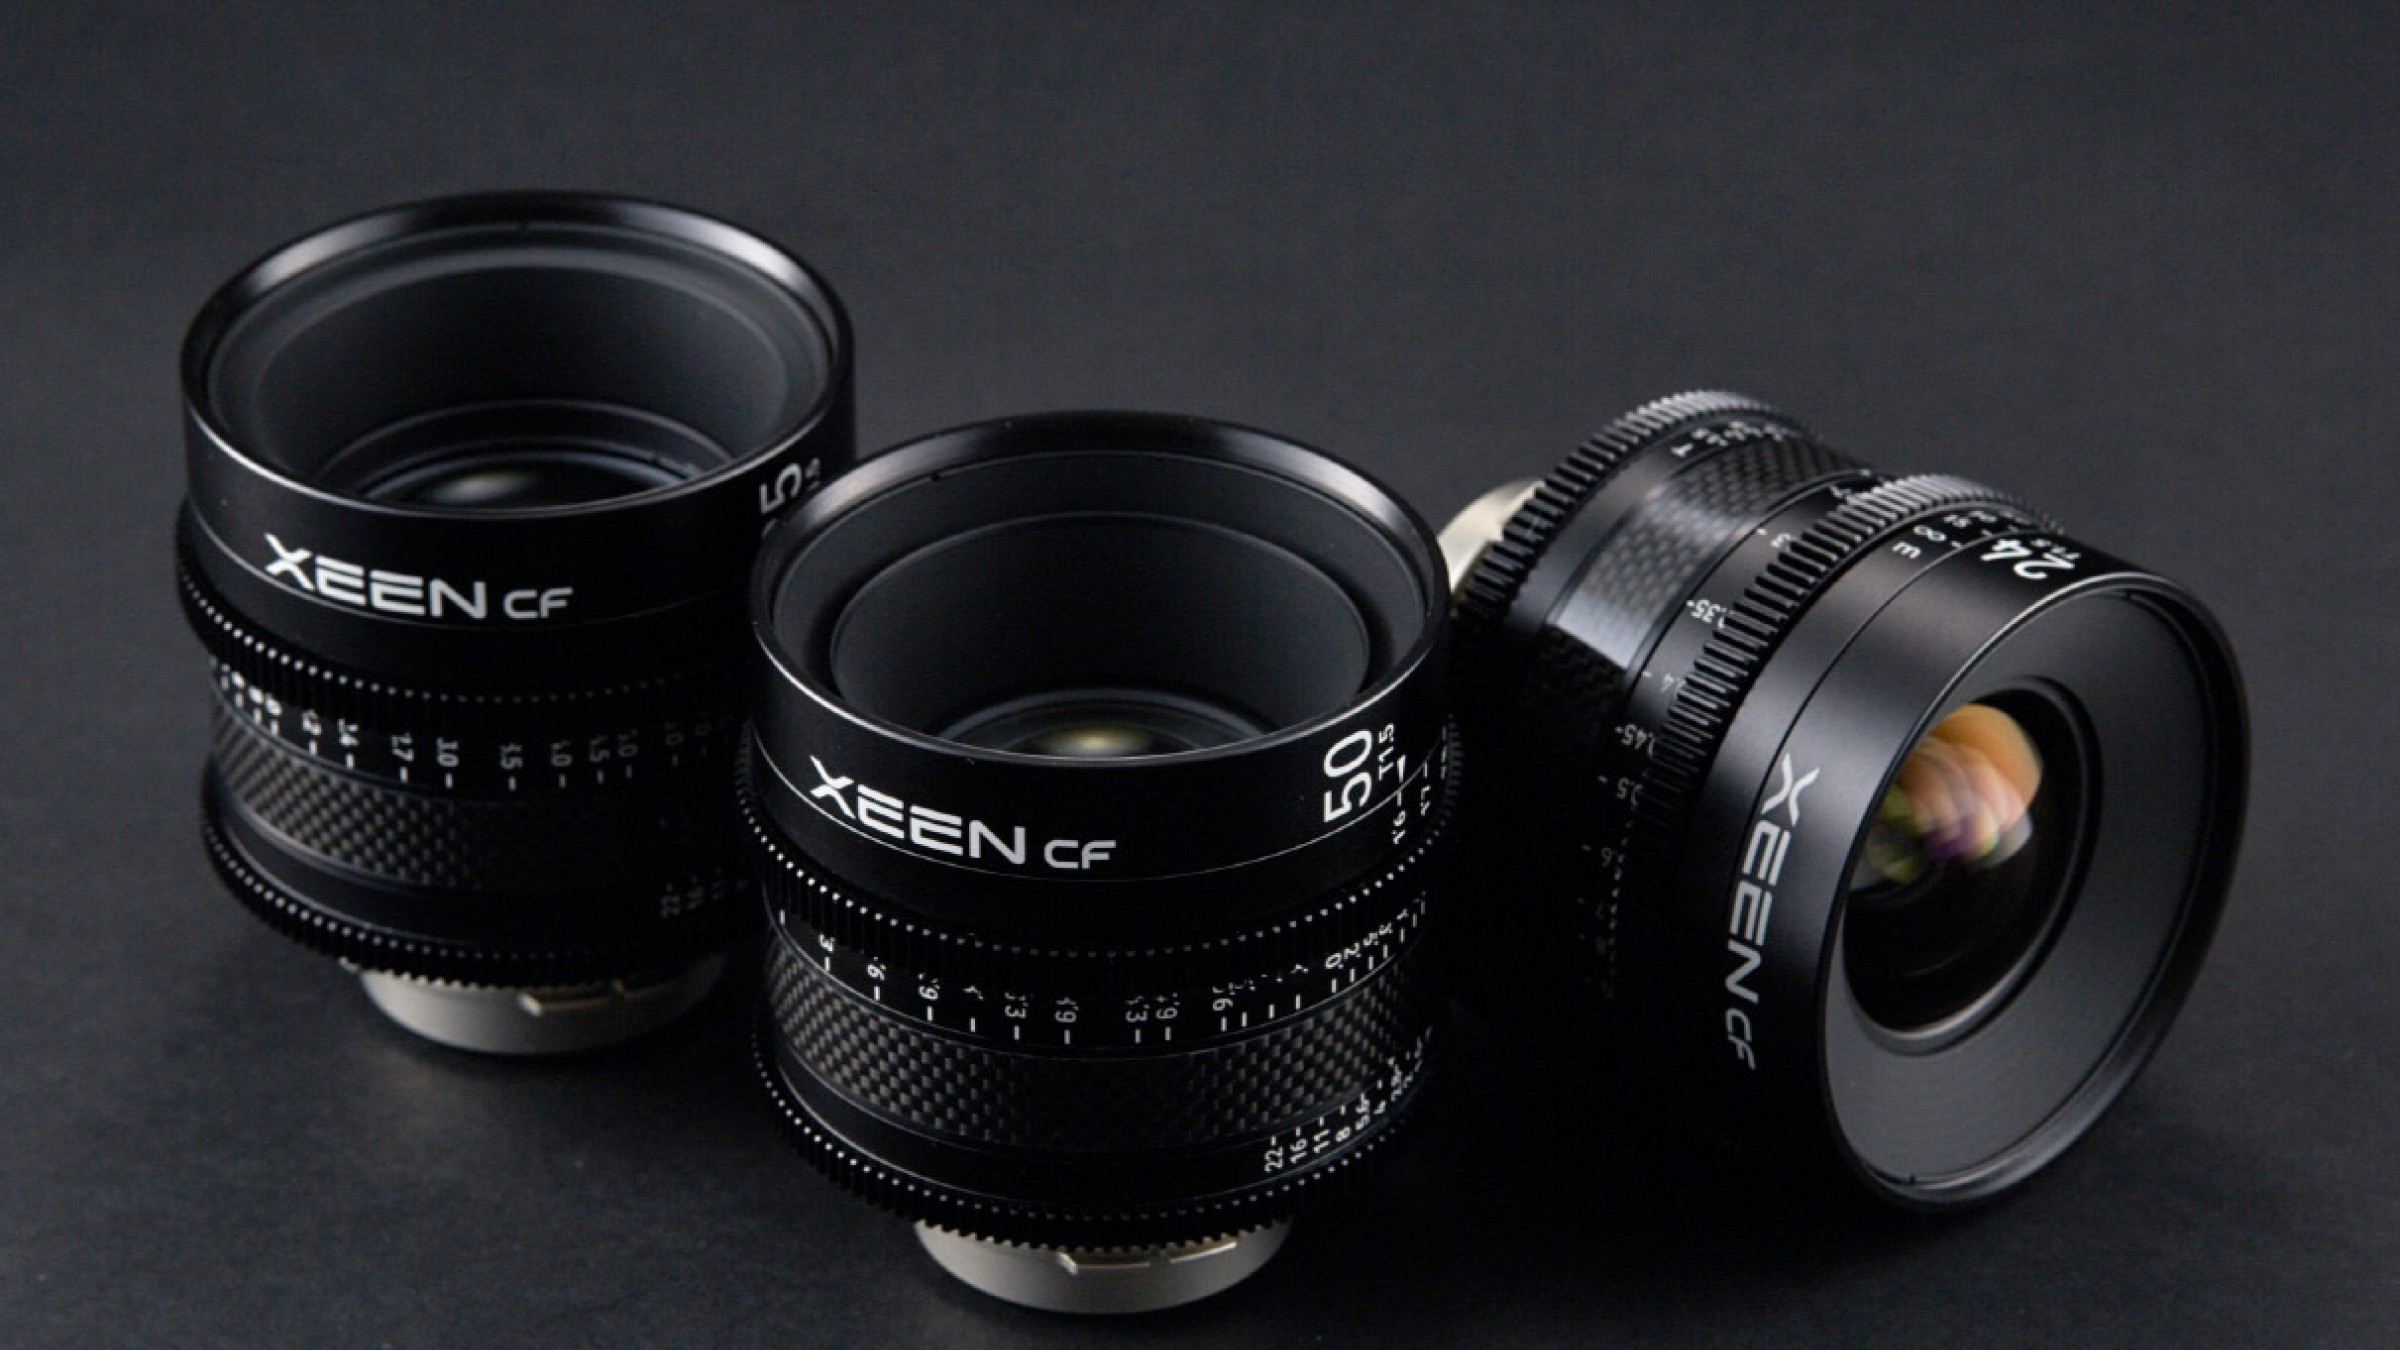 XEEN CF Primes: Are These New Lightweight Lenses a Must For Your Kit?